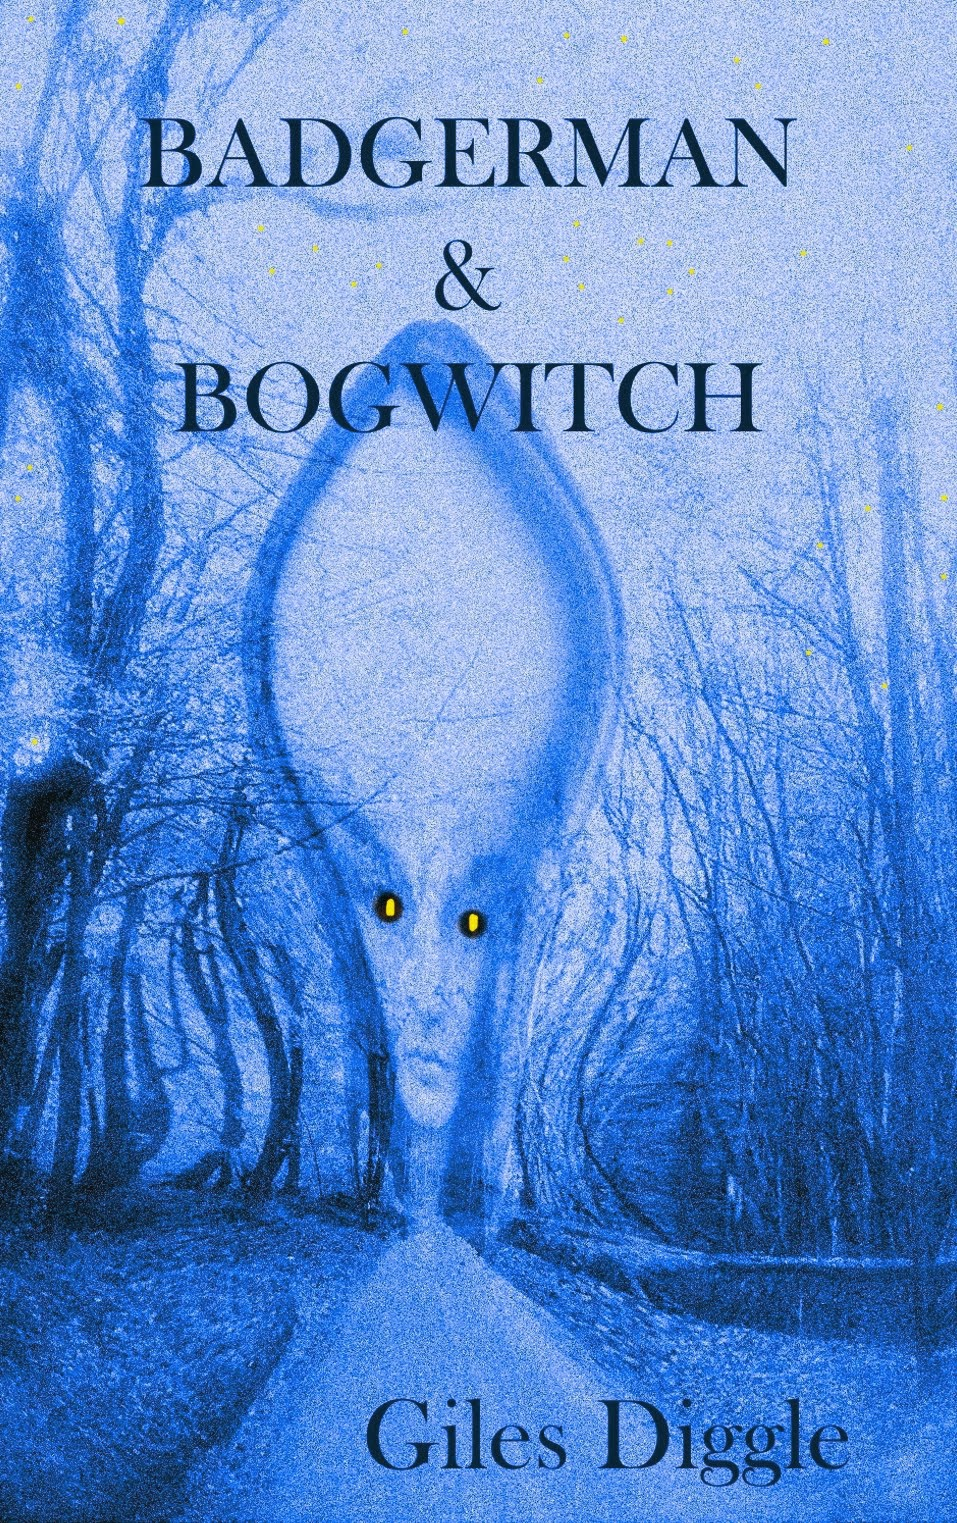 Badgerman & Bogwitch